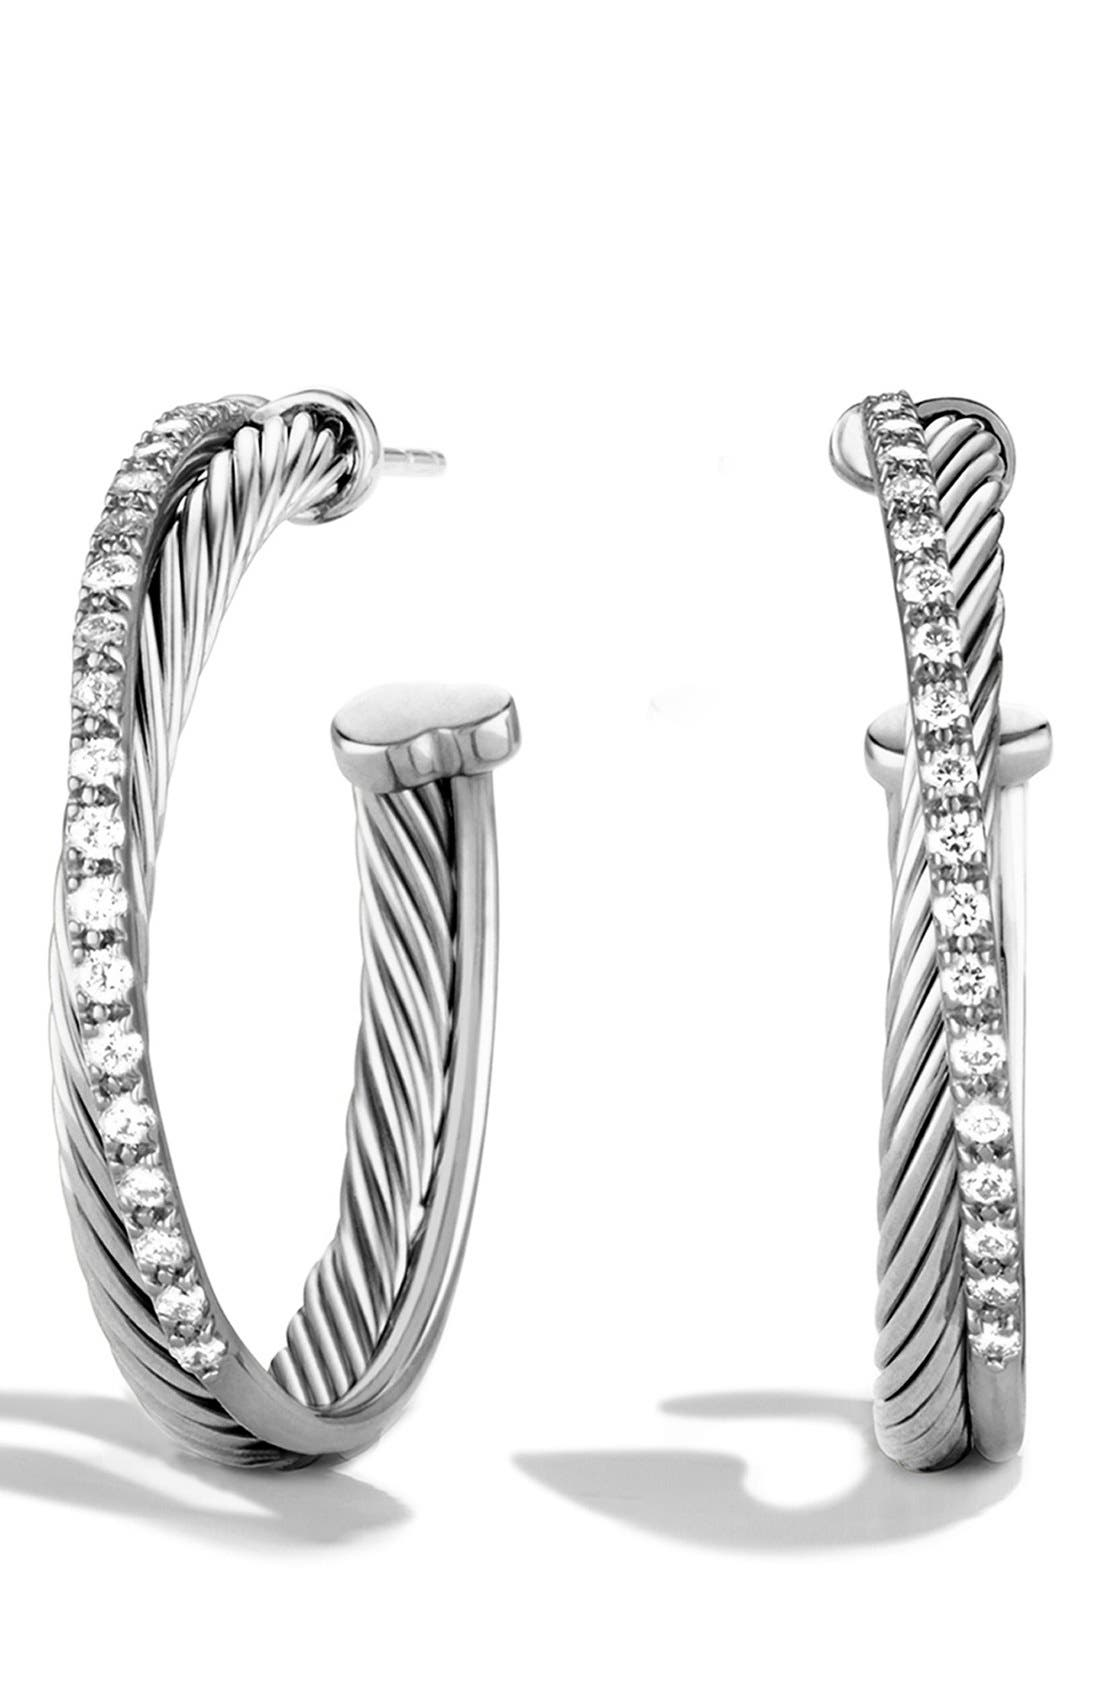 DAVID YURMAN Crossover Hoop Earrings with Diamonds